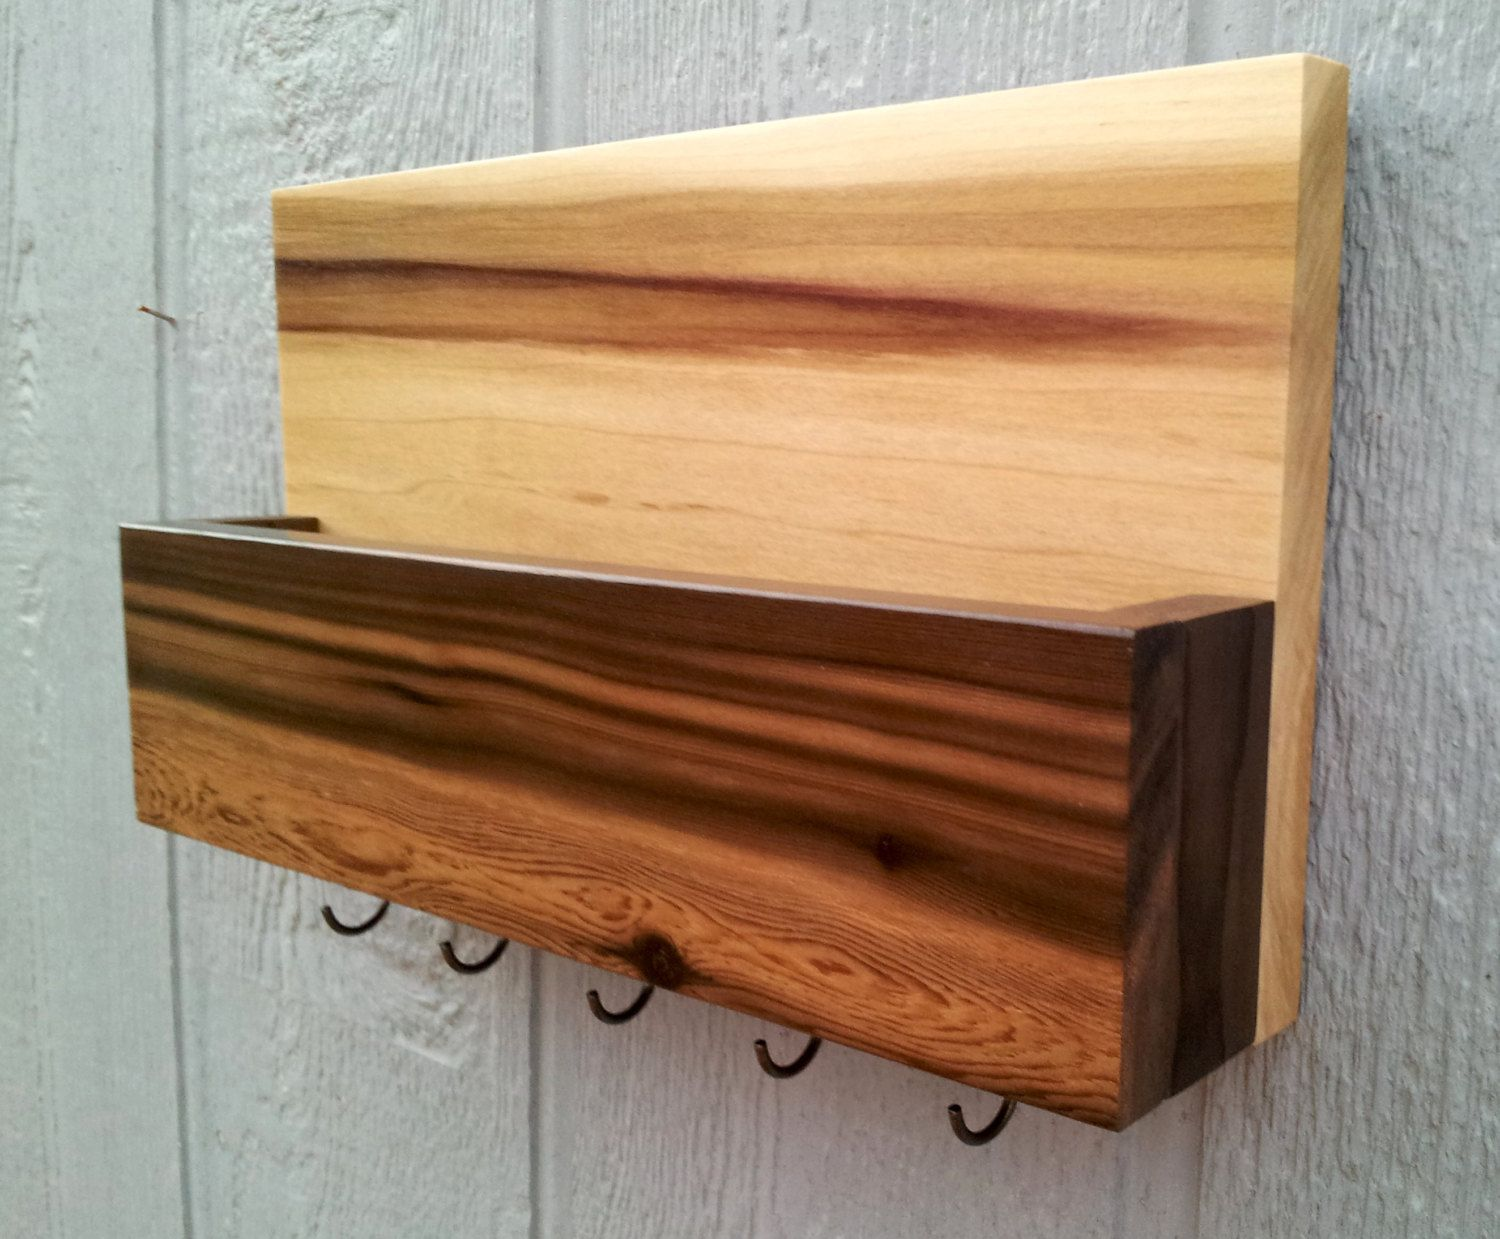 Wooden Key Holder With Shelf Mail And Key Holder Key Rack Handmade Cedar And